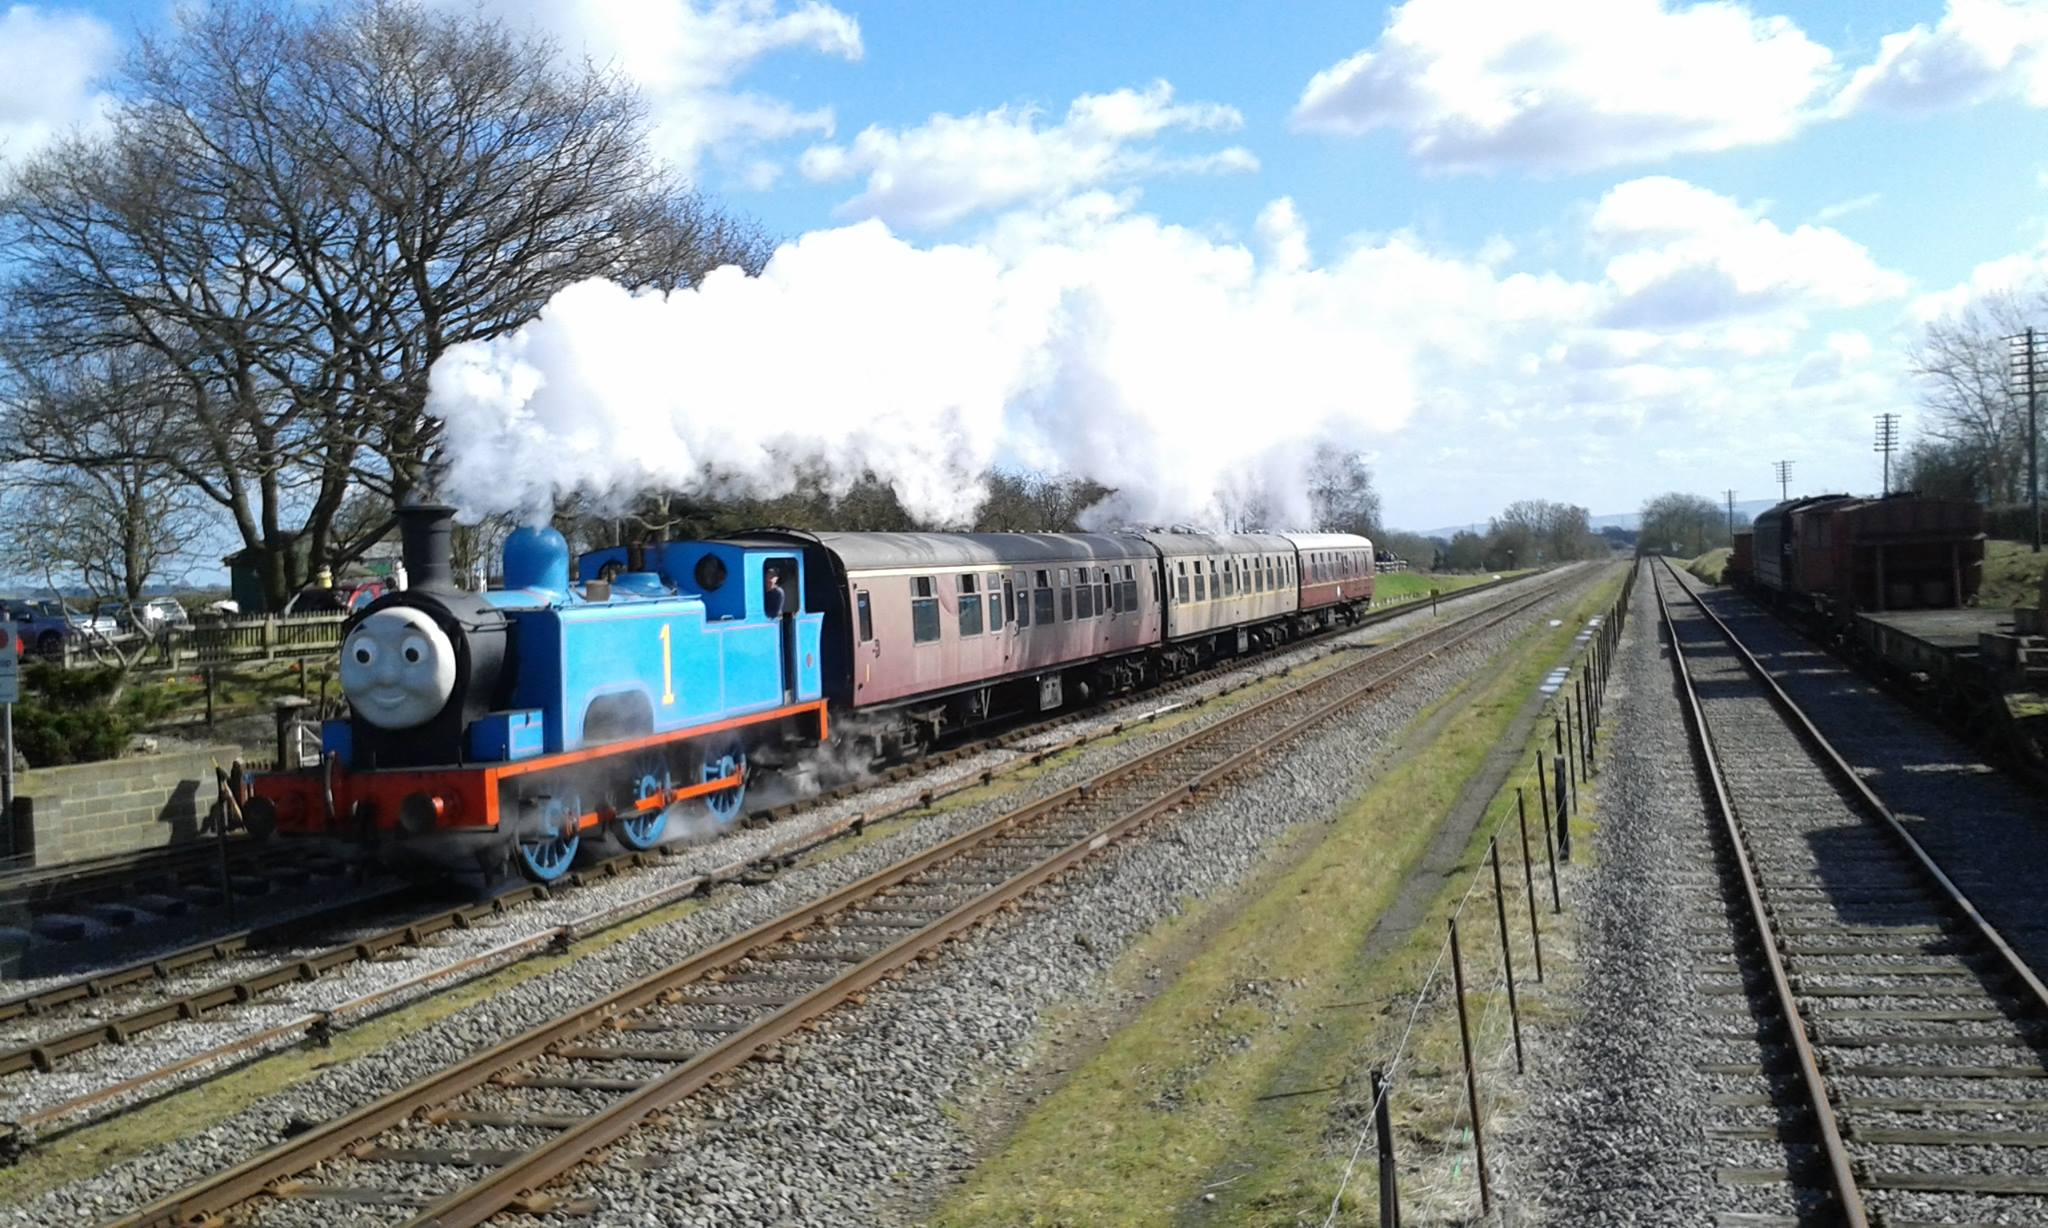 Day Out With Thomas Buckinghamshire Railway Centre